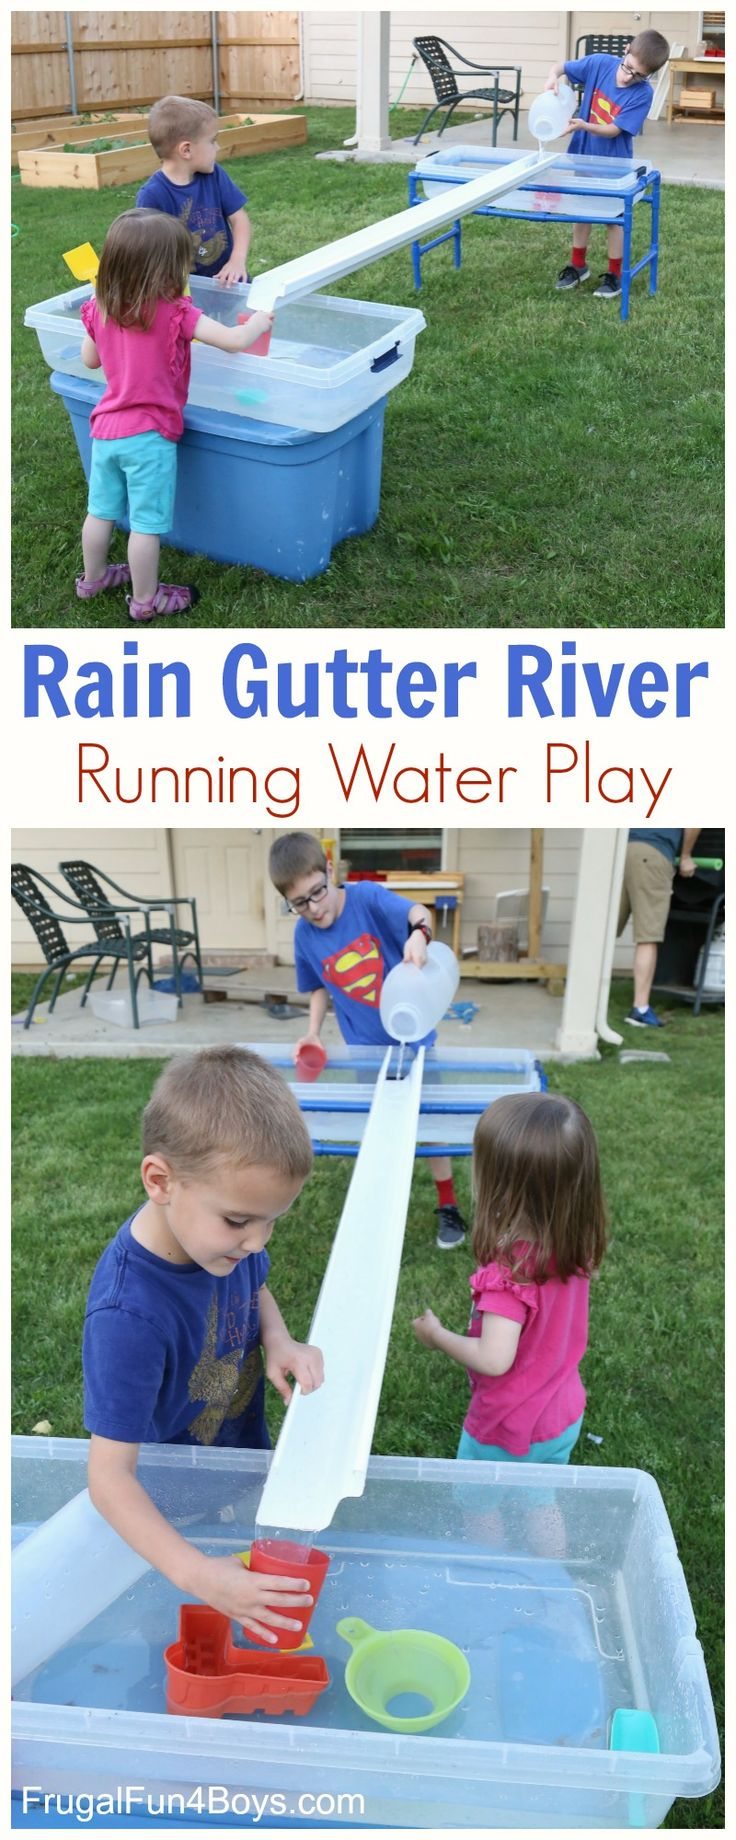 Drawn river color for kid Pinterest Water ideas activities Running